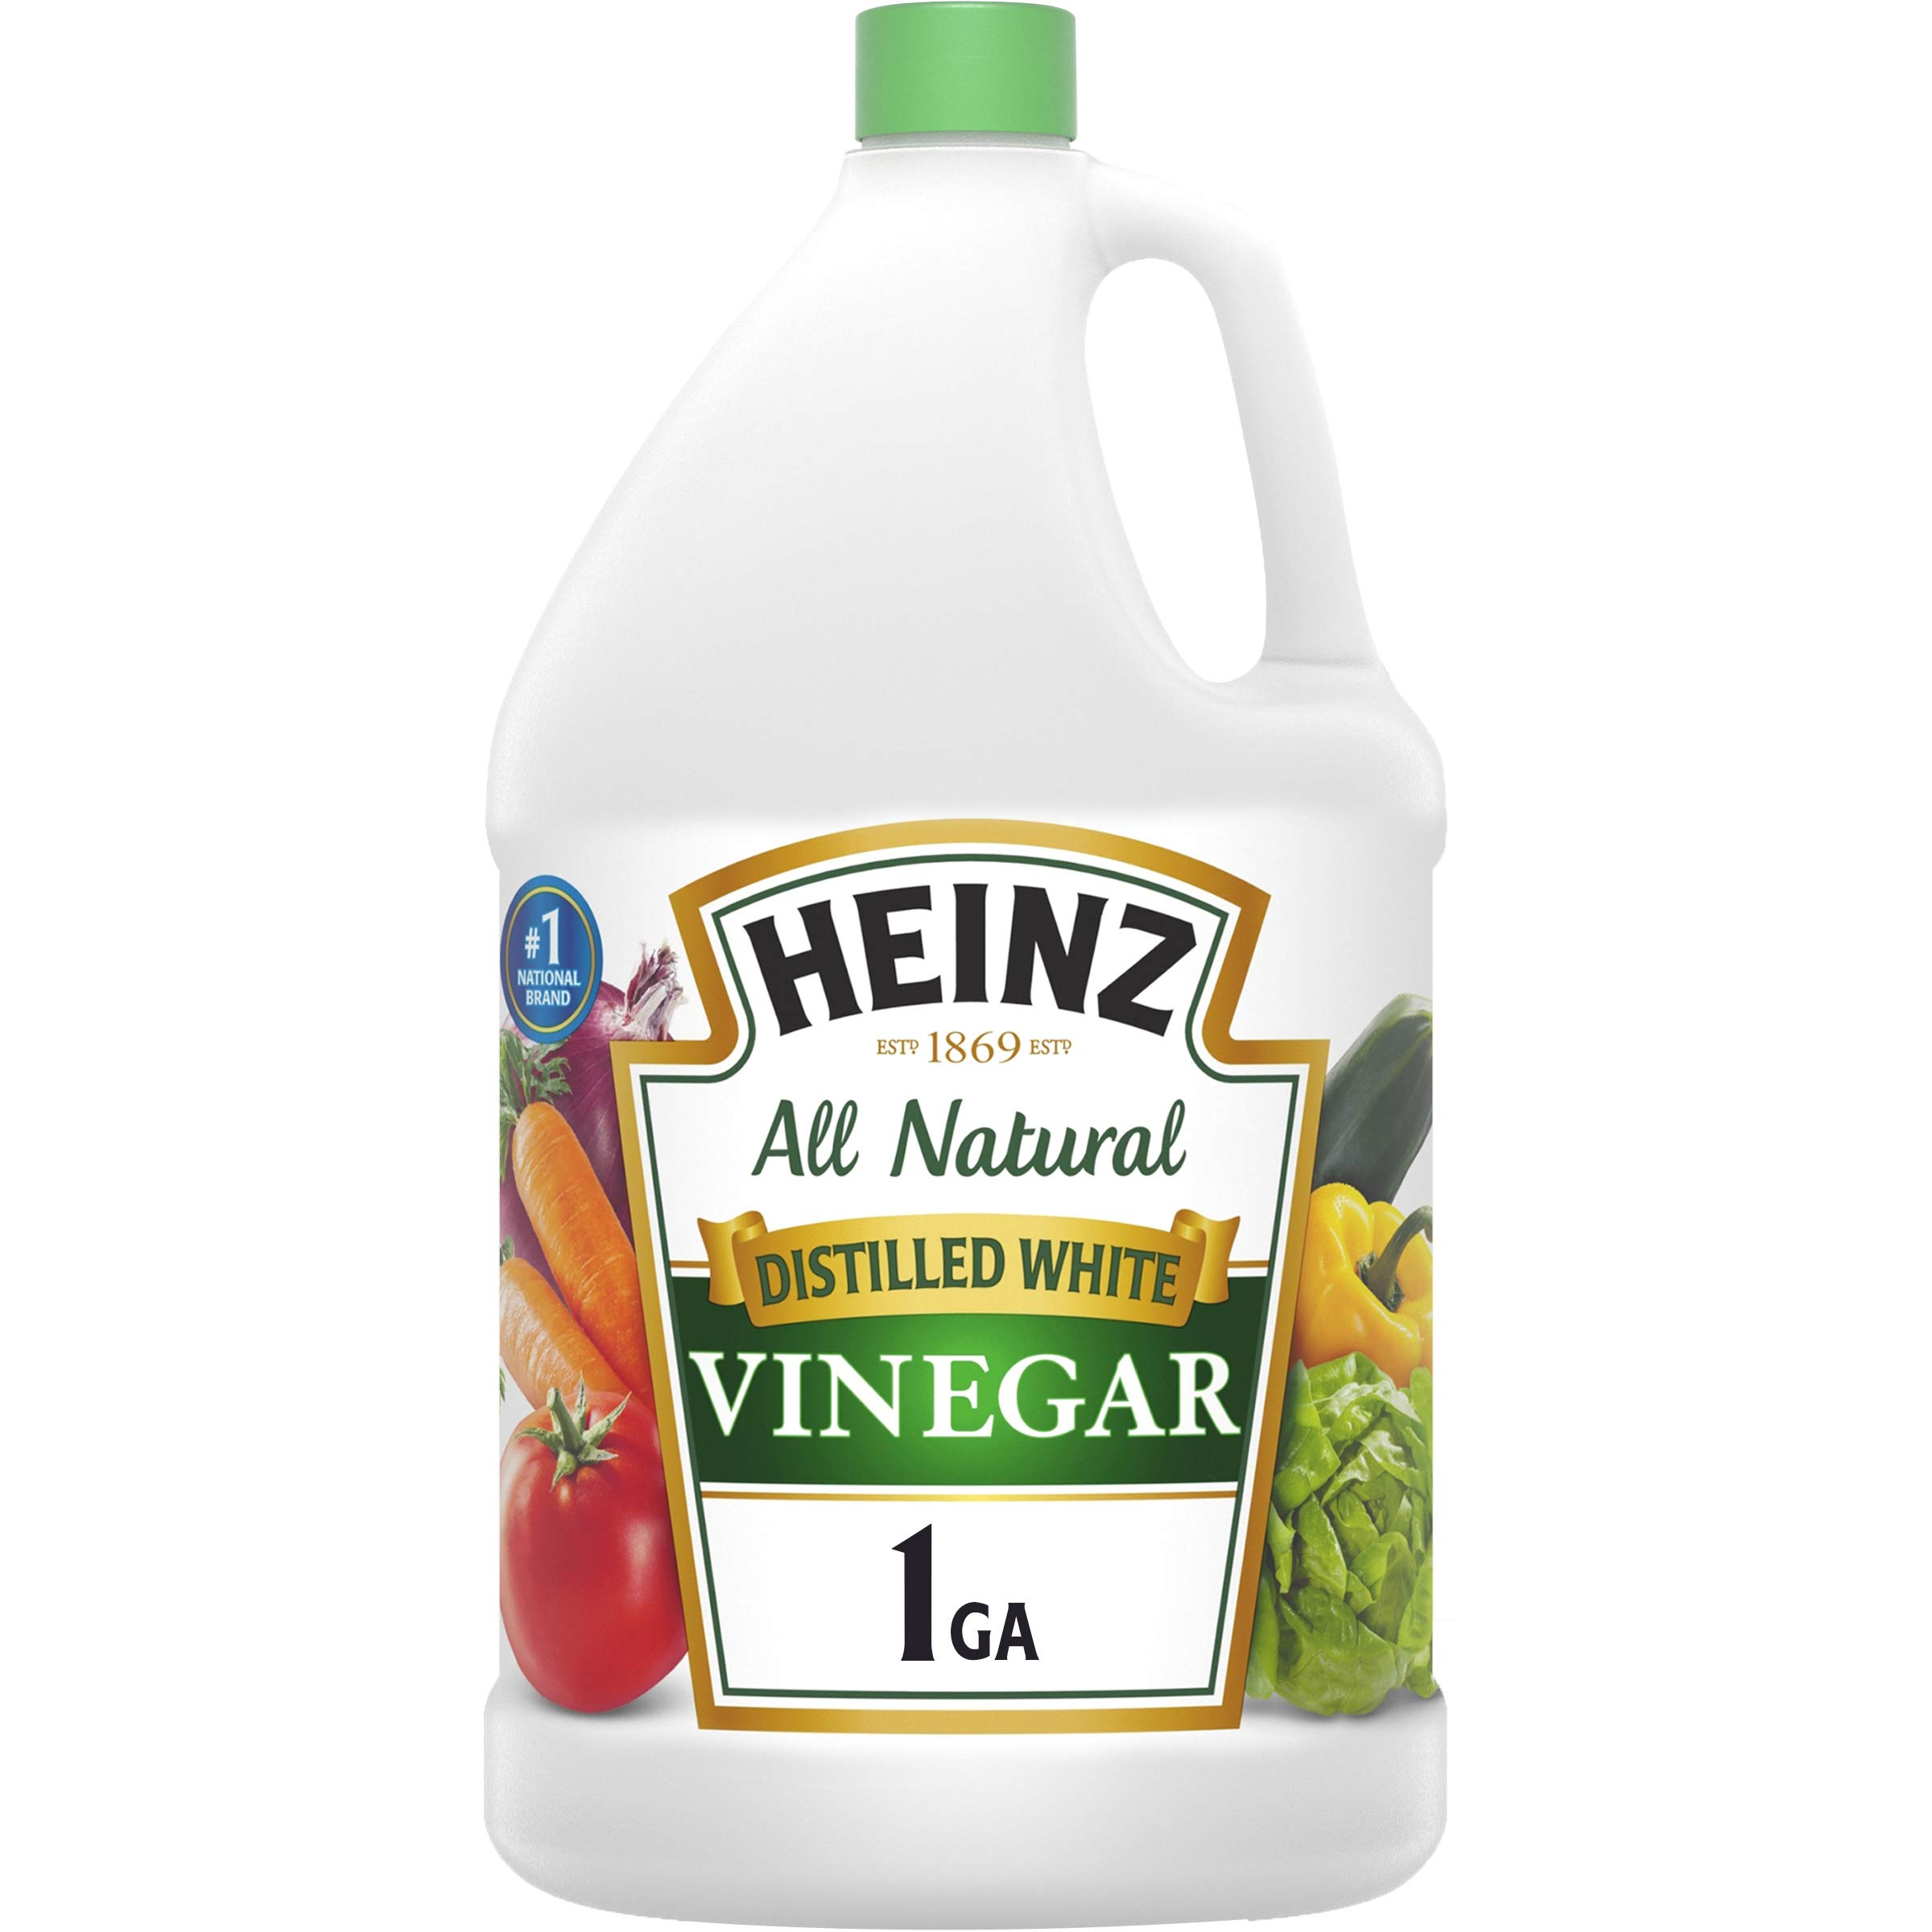 Heinz Distilled White Vinegar (1 gal Jug)